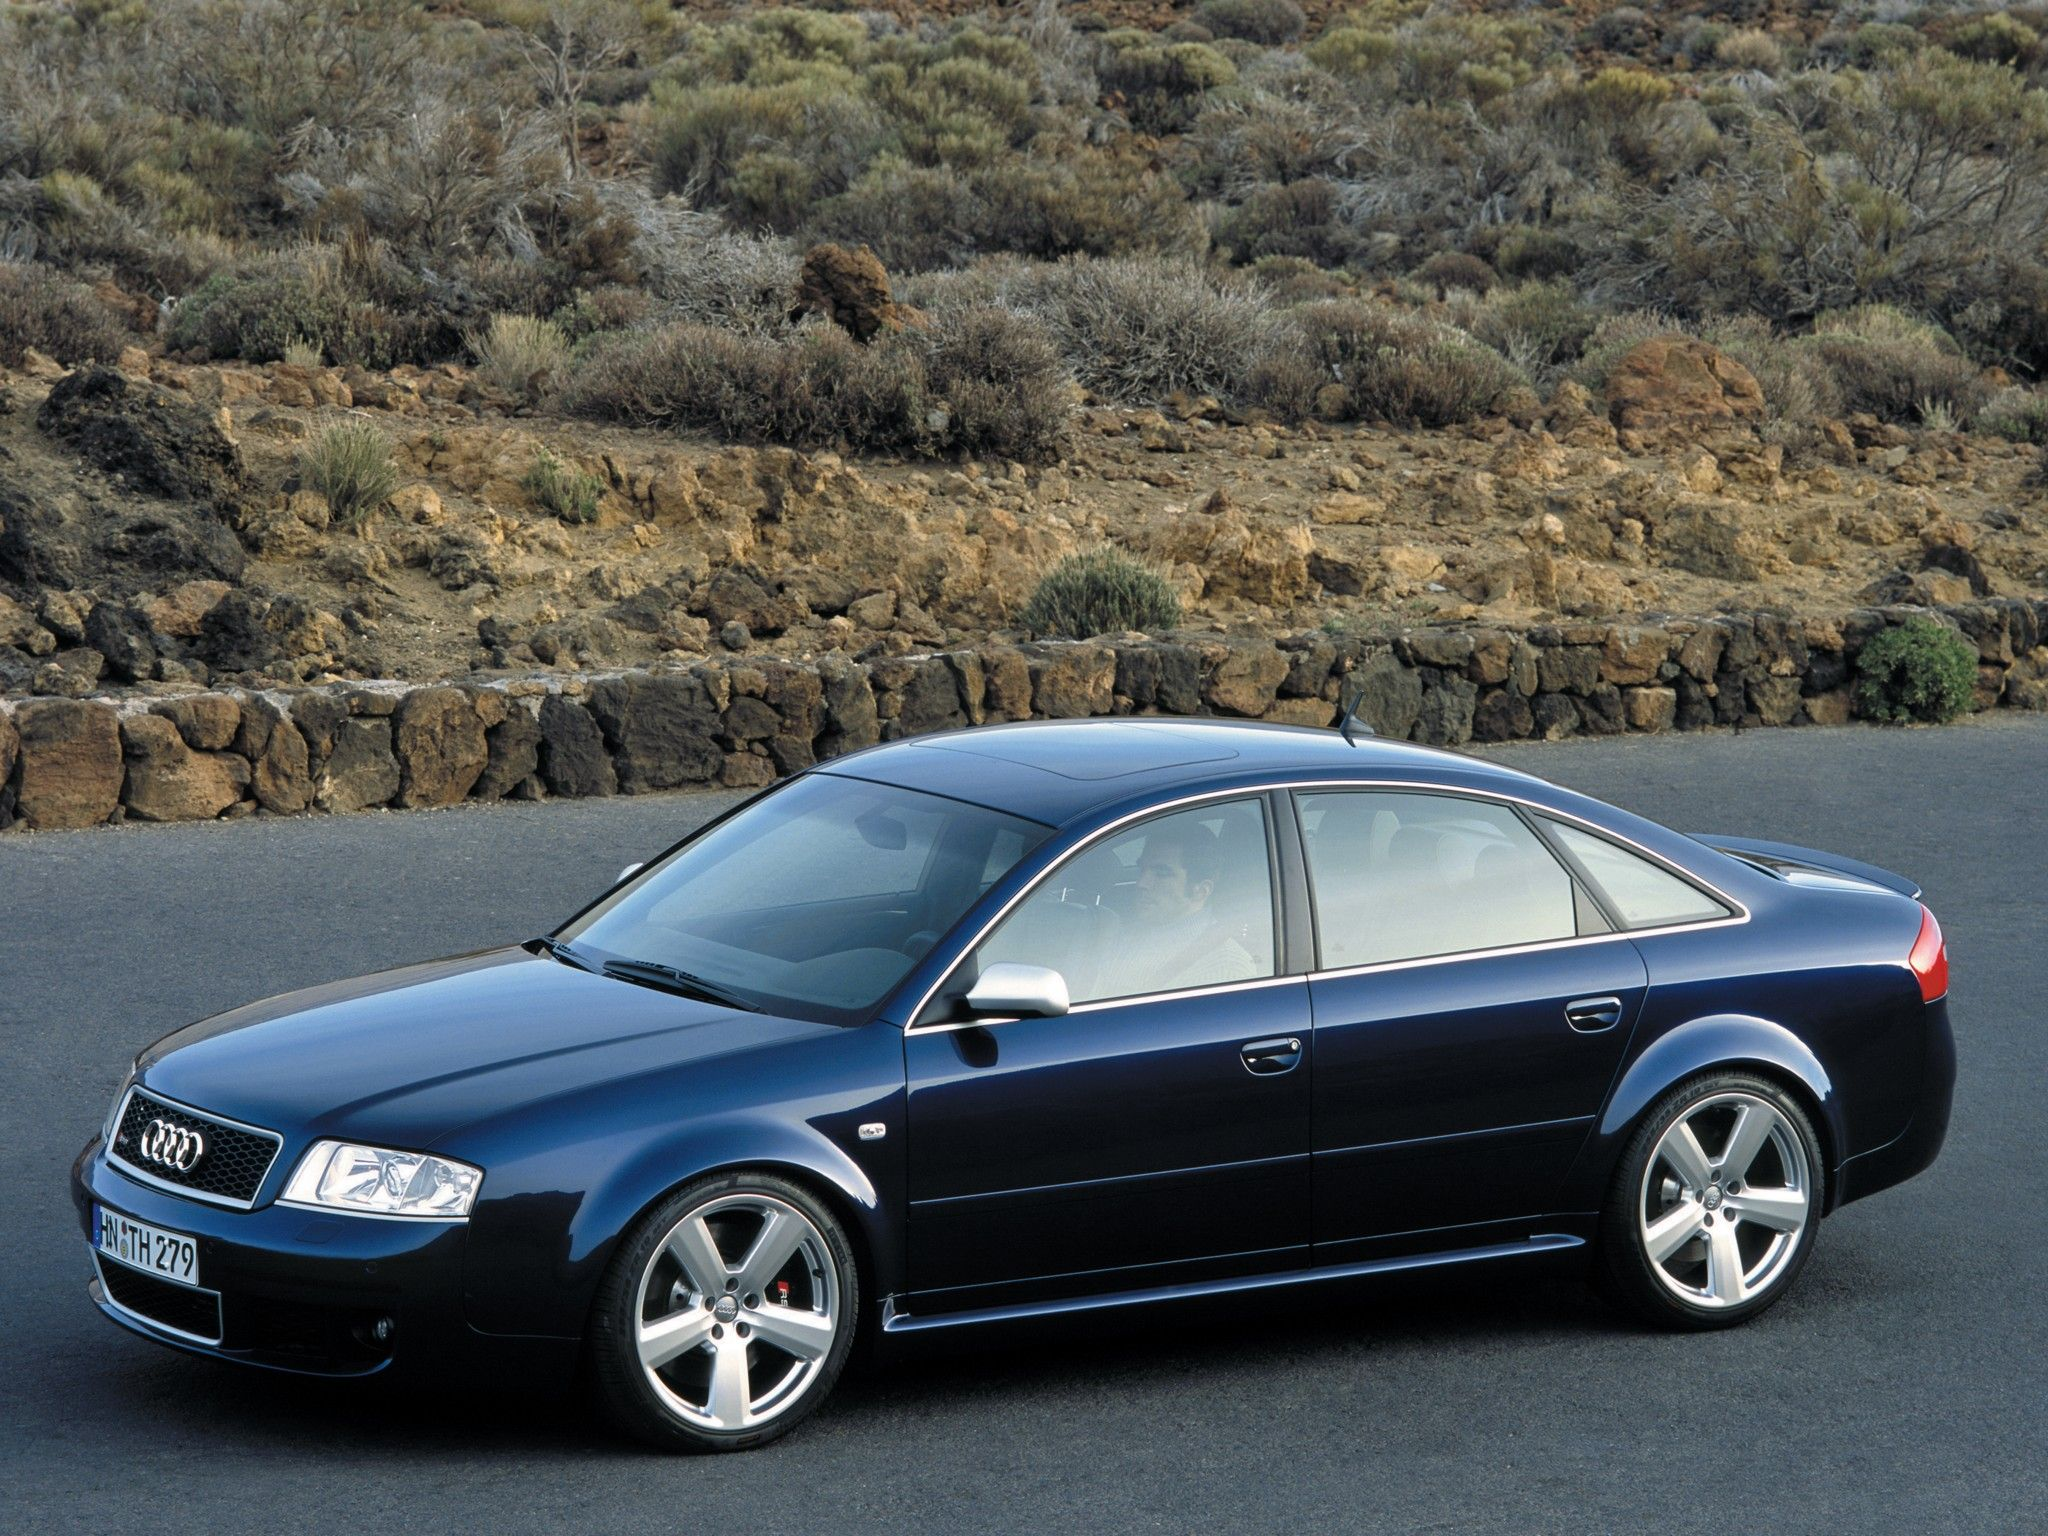 2002 Audi Rs6 Sedan Audi Rs 6 Wikipedia The Free Encyclopedia 2002 Audi Rs6 C5 Typ 4b Quattro Sedan Blueprints Free Download Free Audi Rs6 Audi A6 Audi